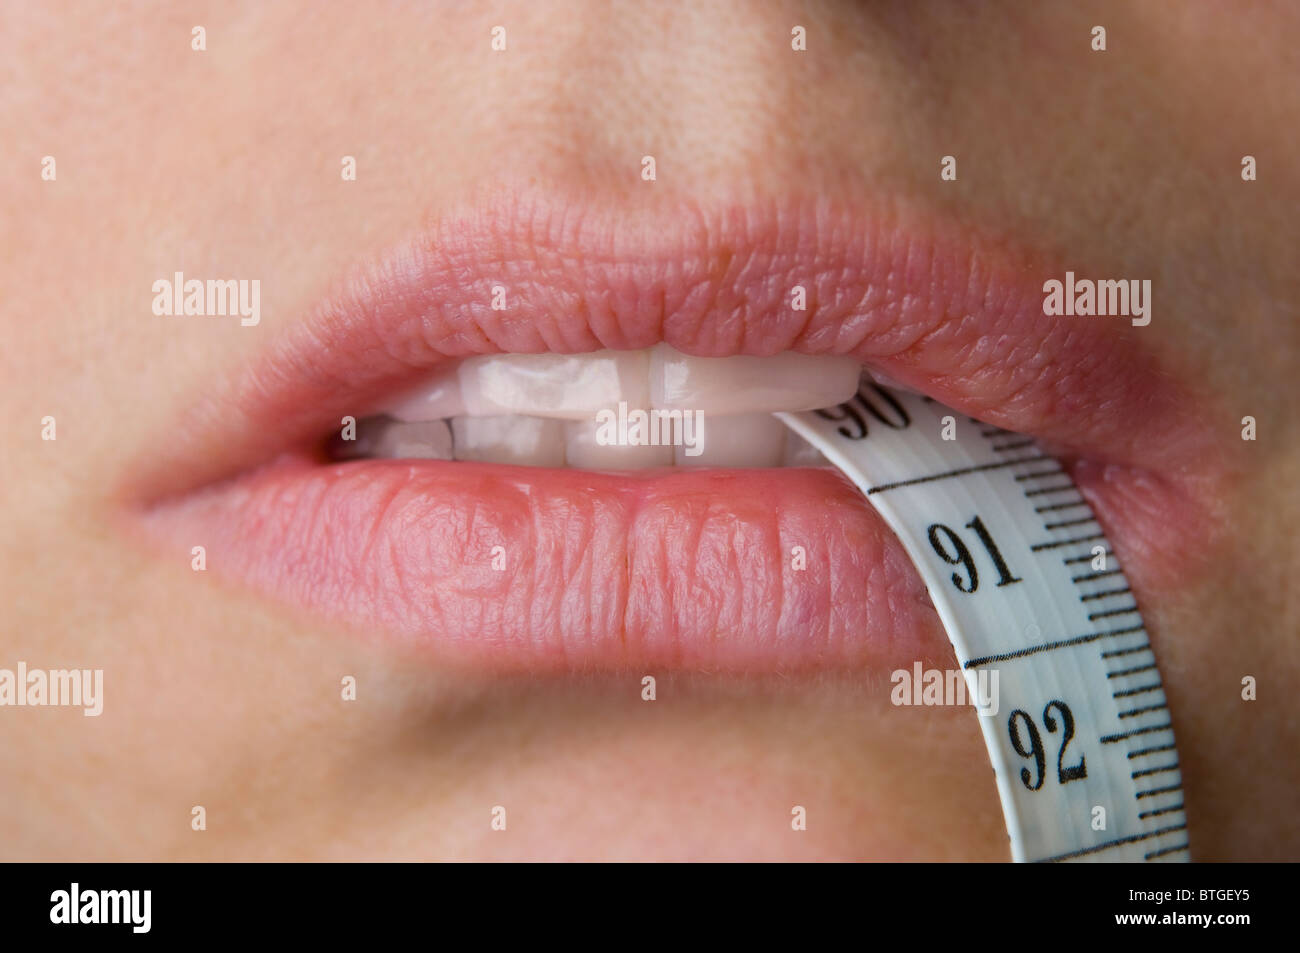 womans mouth with tape measure indicating weight loss or gain - Stock Image